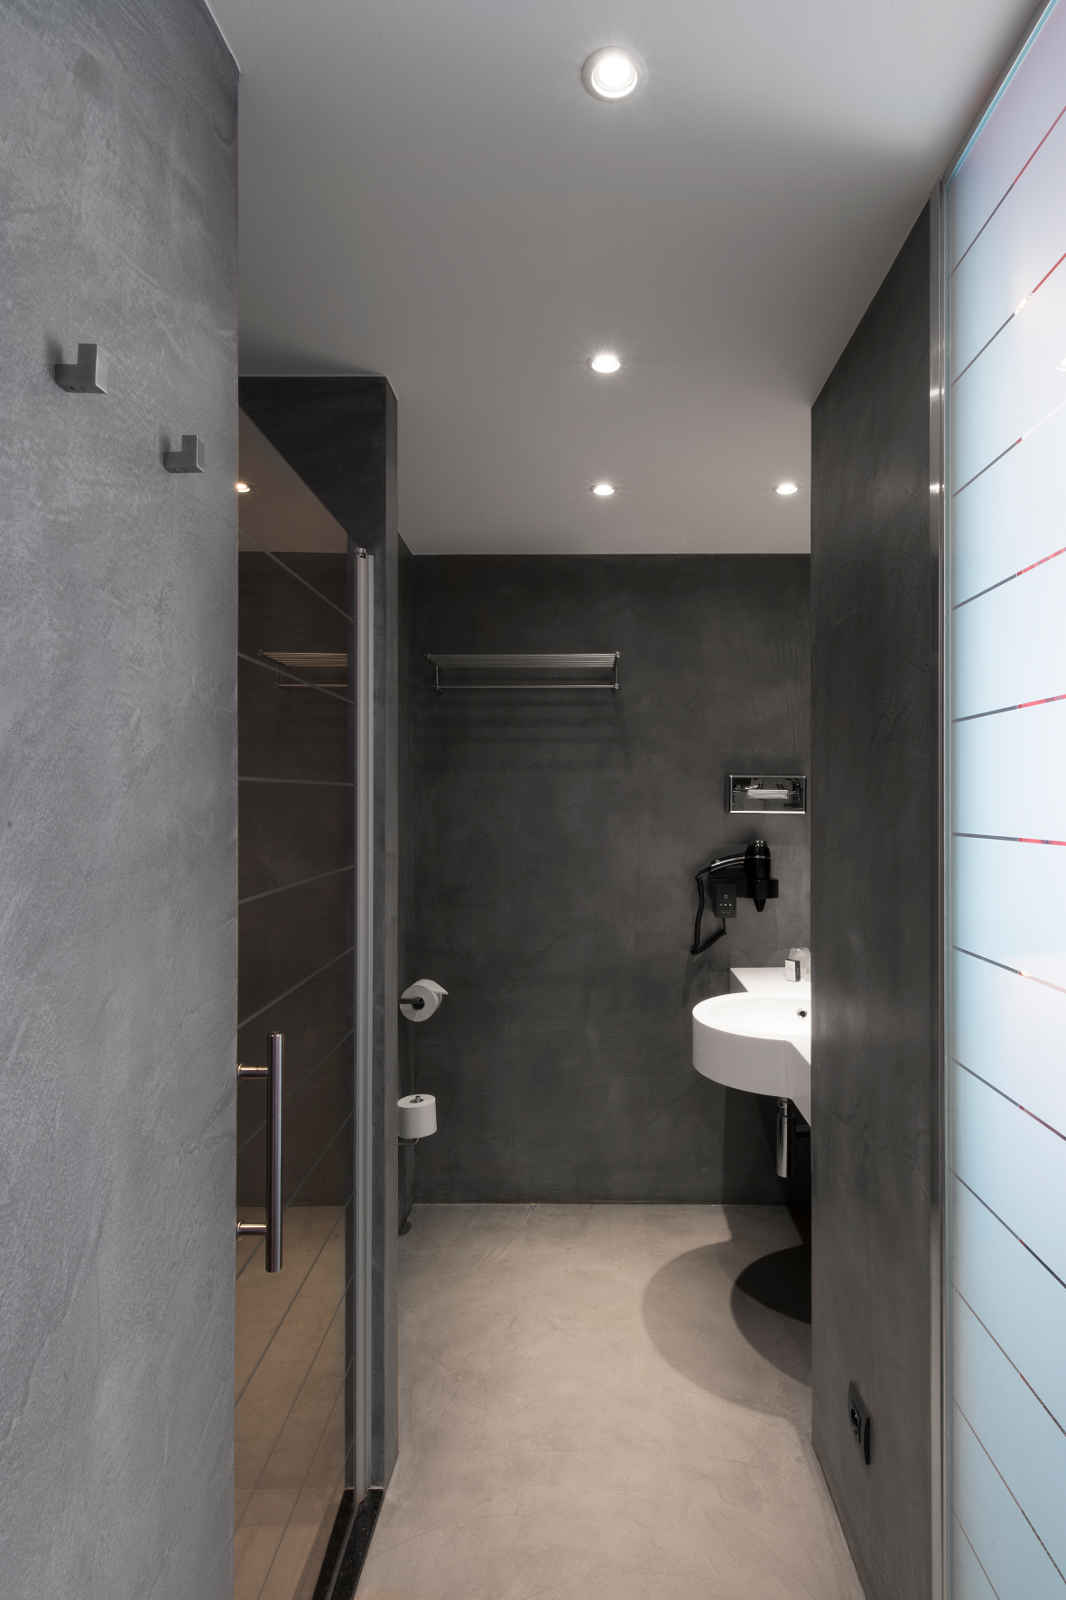 mortex bathrooms on pinterest texture painting showers and bathroom. Black Bedroom Furniture Sets. Home Design Ideas